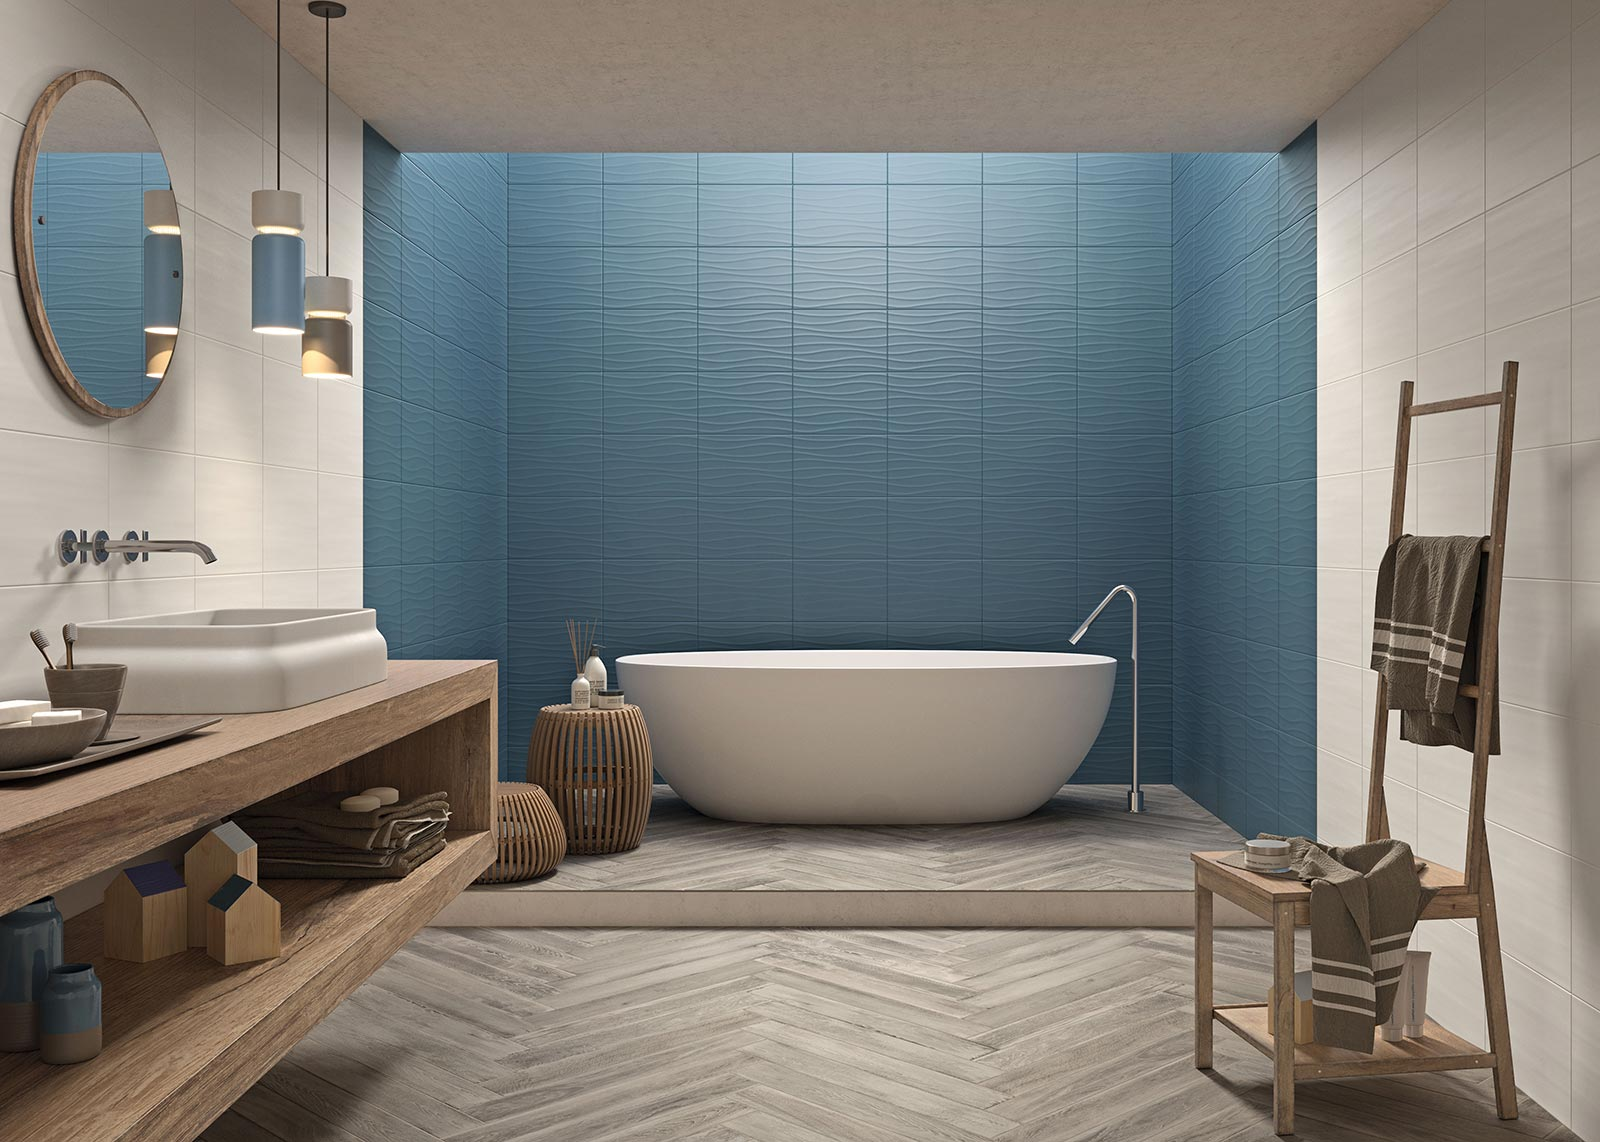 Bathroom flooring: ceramic and porcelain stoneware | Marazzi